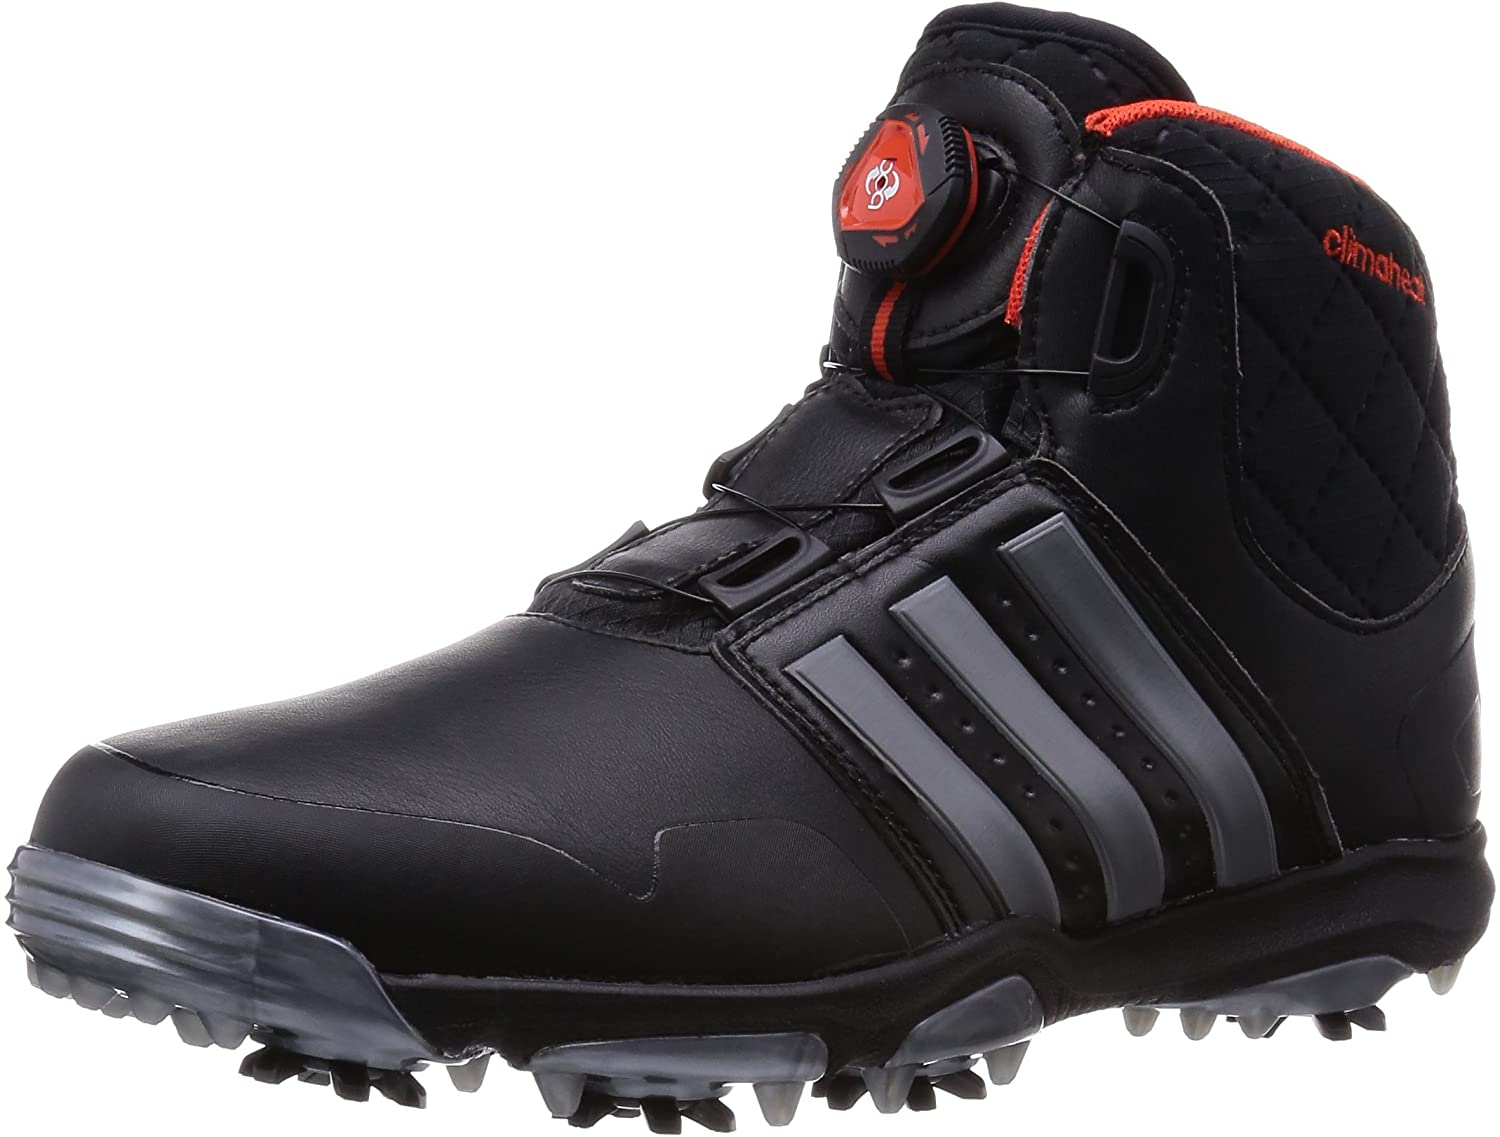 waterproof golf shoes mens